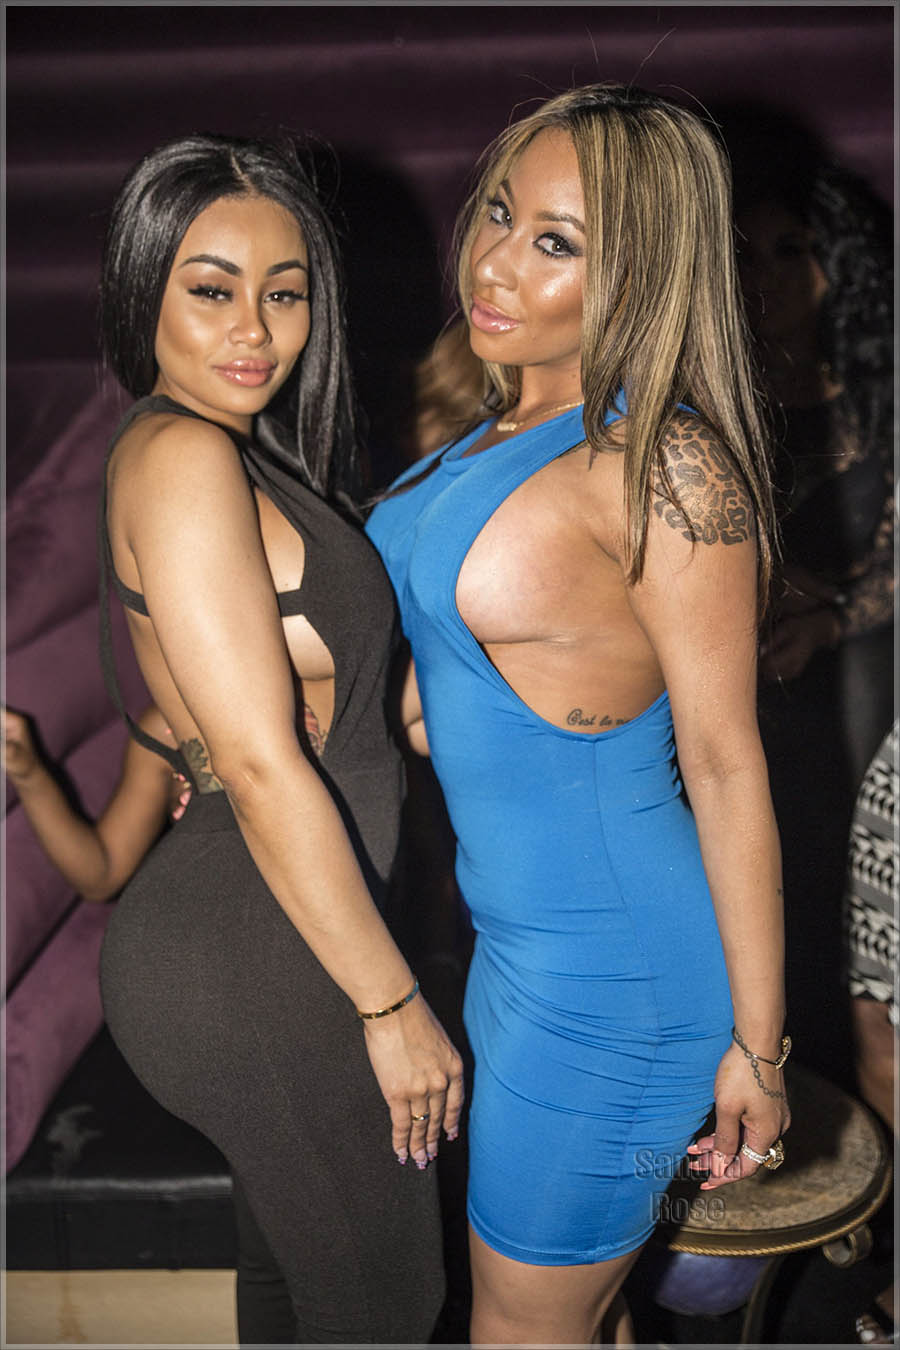 Blac Chyna and Hazel E